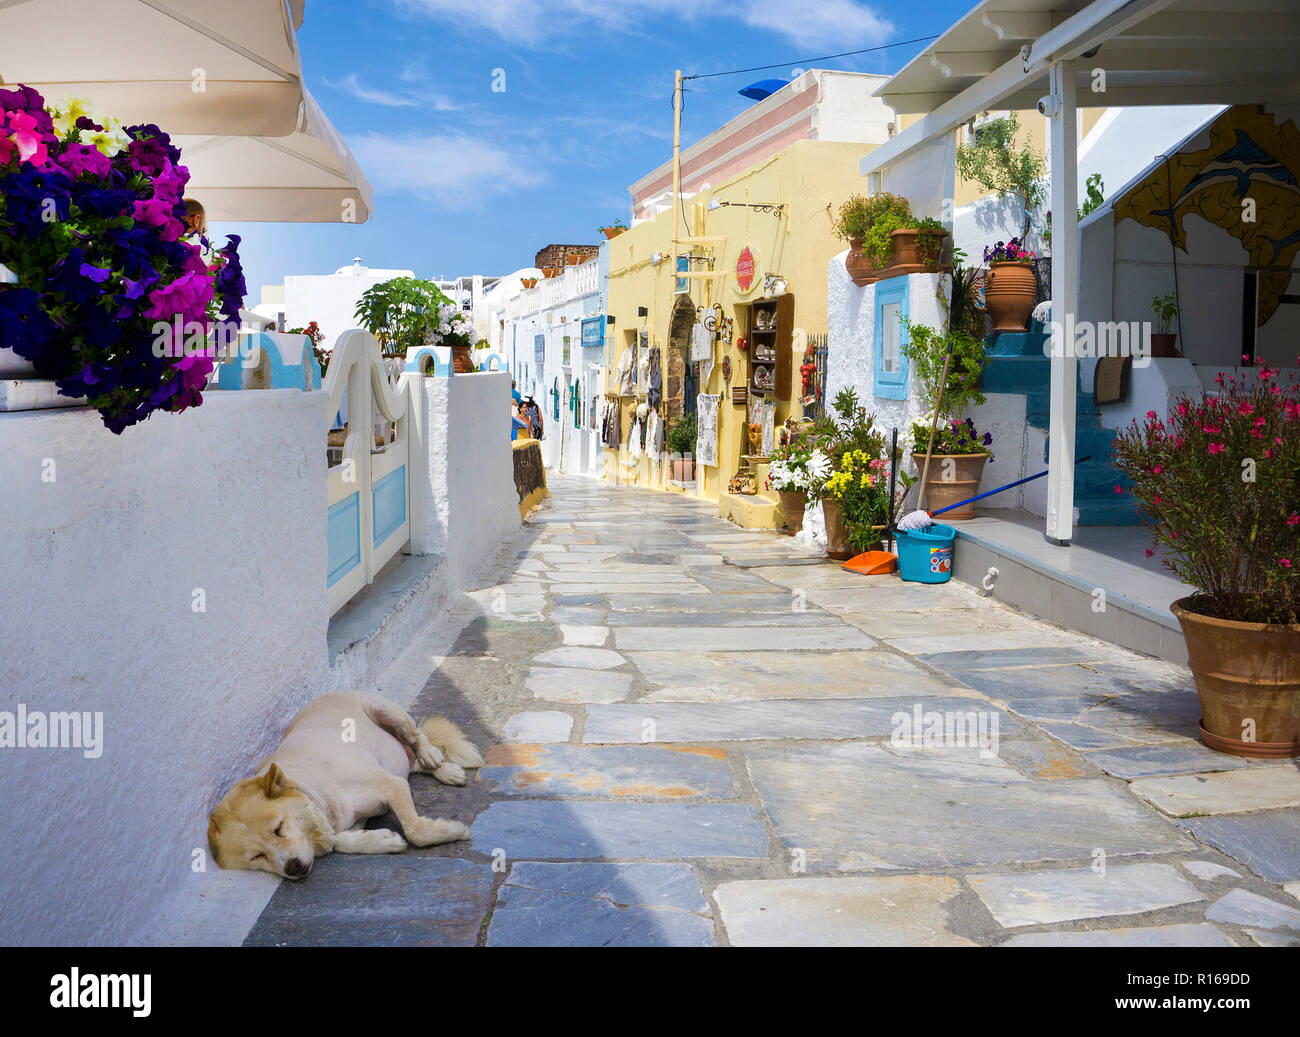 Sleeping dog at the flower-decorated alley in Oia, Santorini, Cyclades, Aegean Sea, Greece - Stock Image